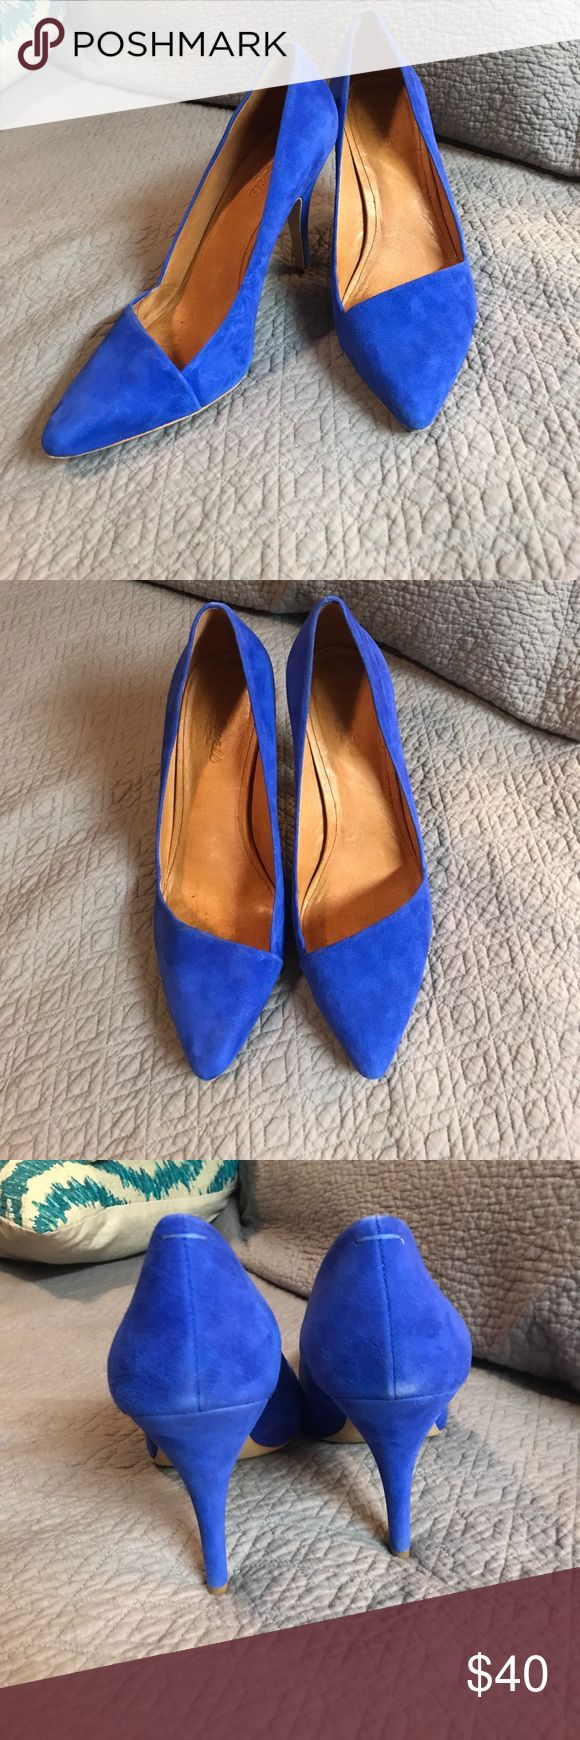 Blue suede shoes Madewell new pointy heel shoes. Blue suede. Rarely worn. Slight rub on back of heels but not super noticeable. Madewell Shoes Heels